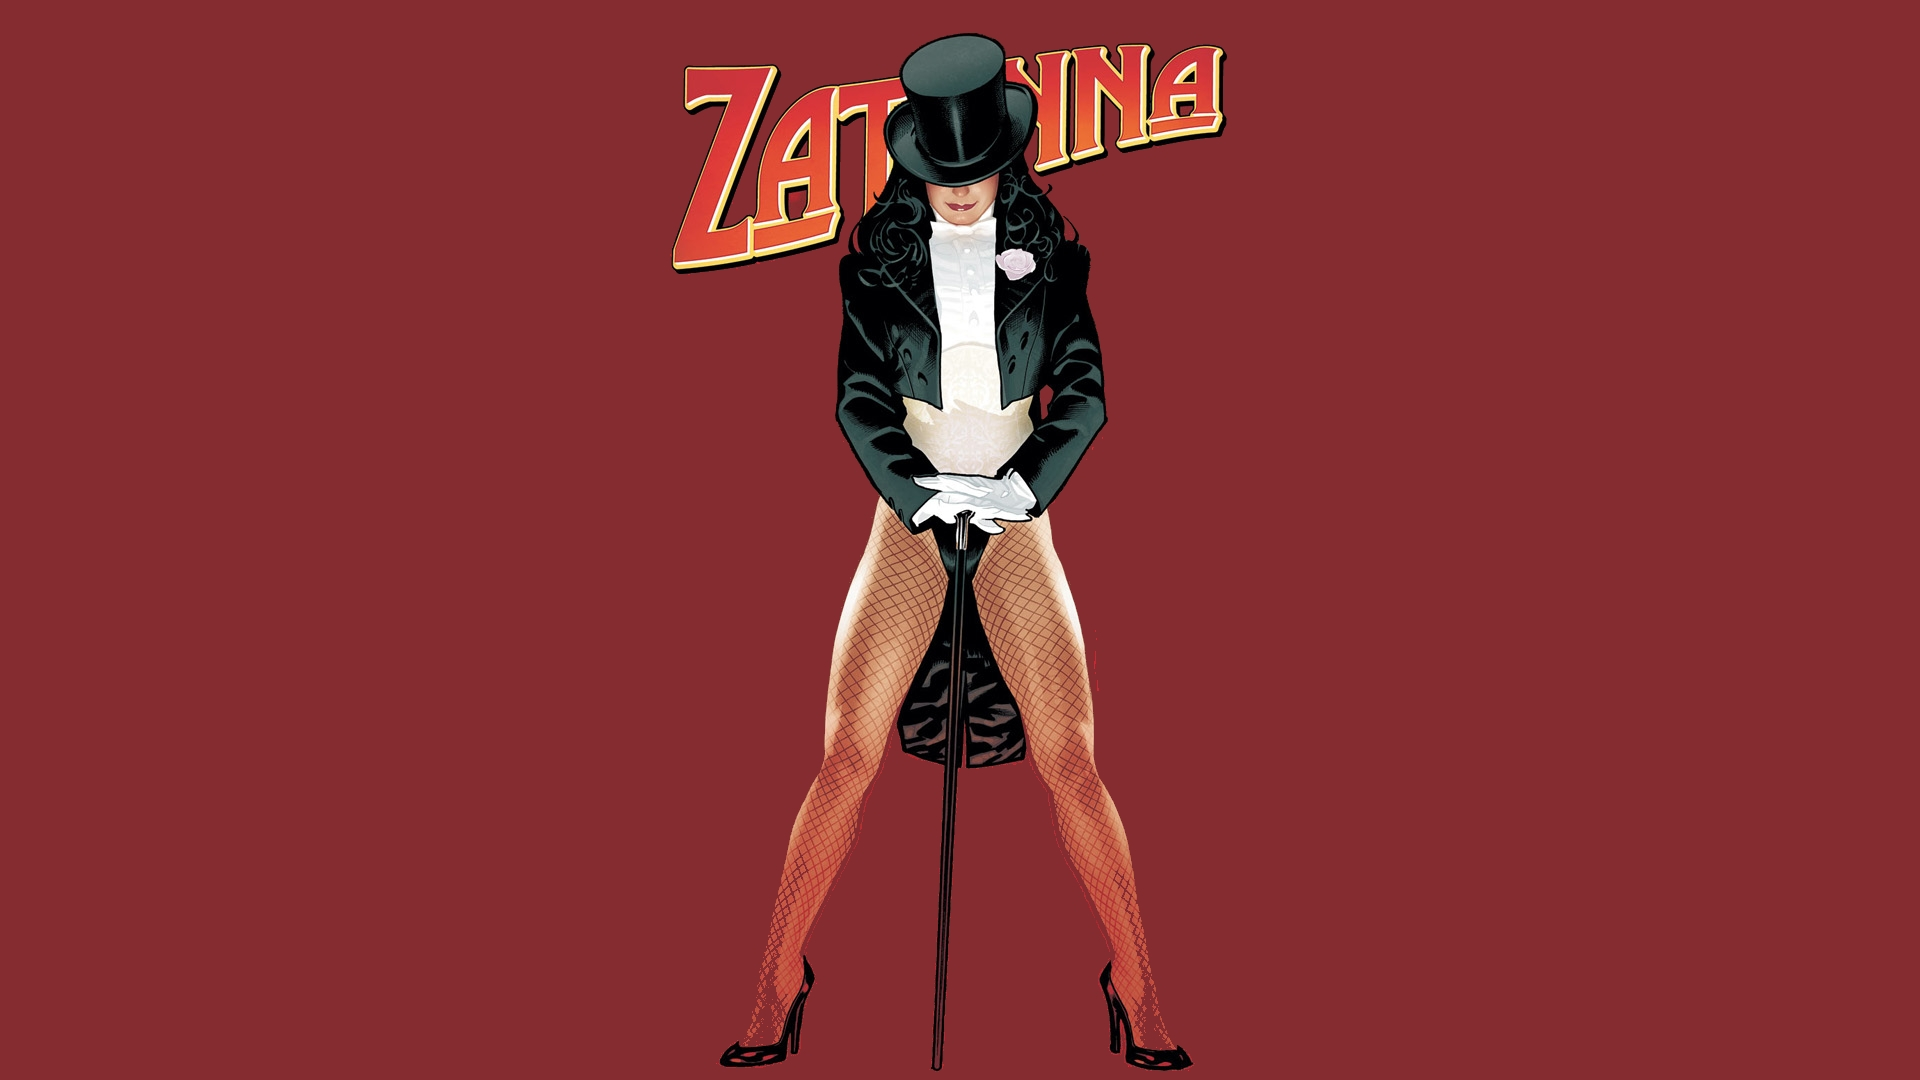 zatanna dc wallpaper - photo #1